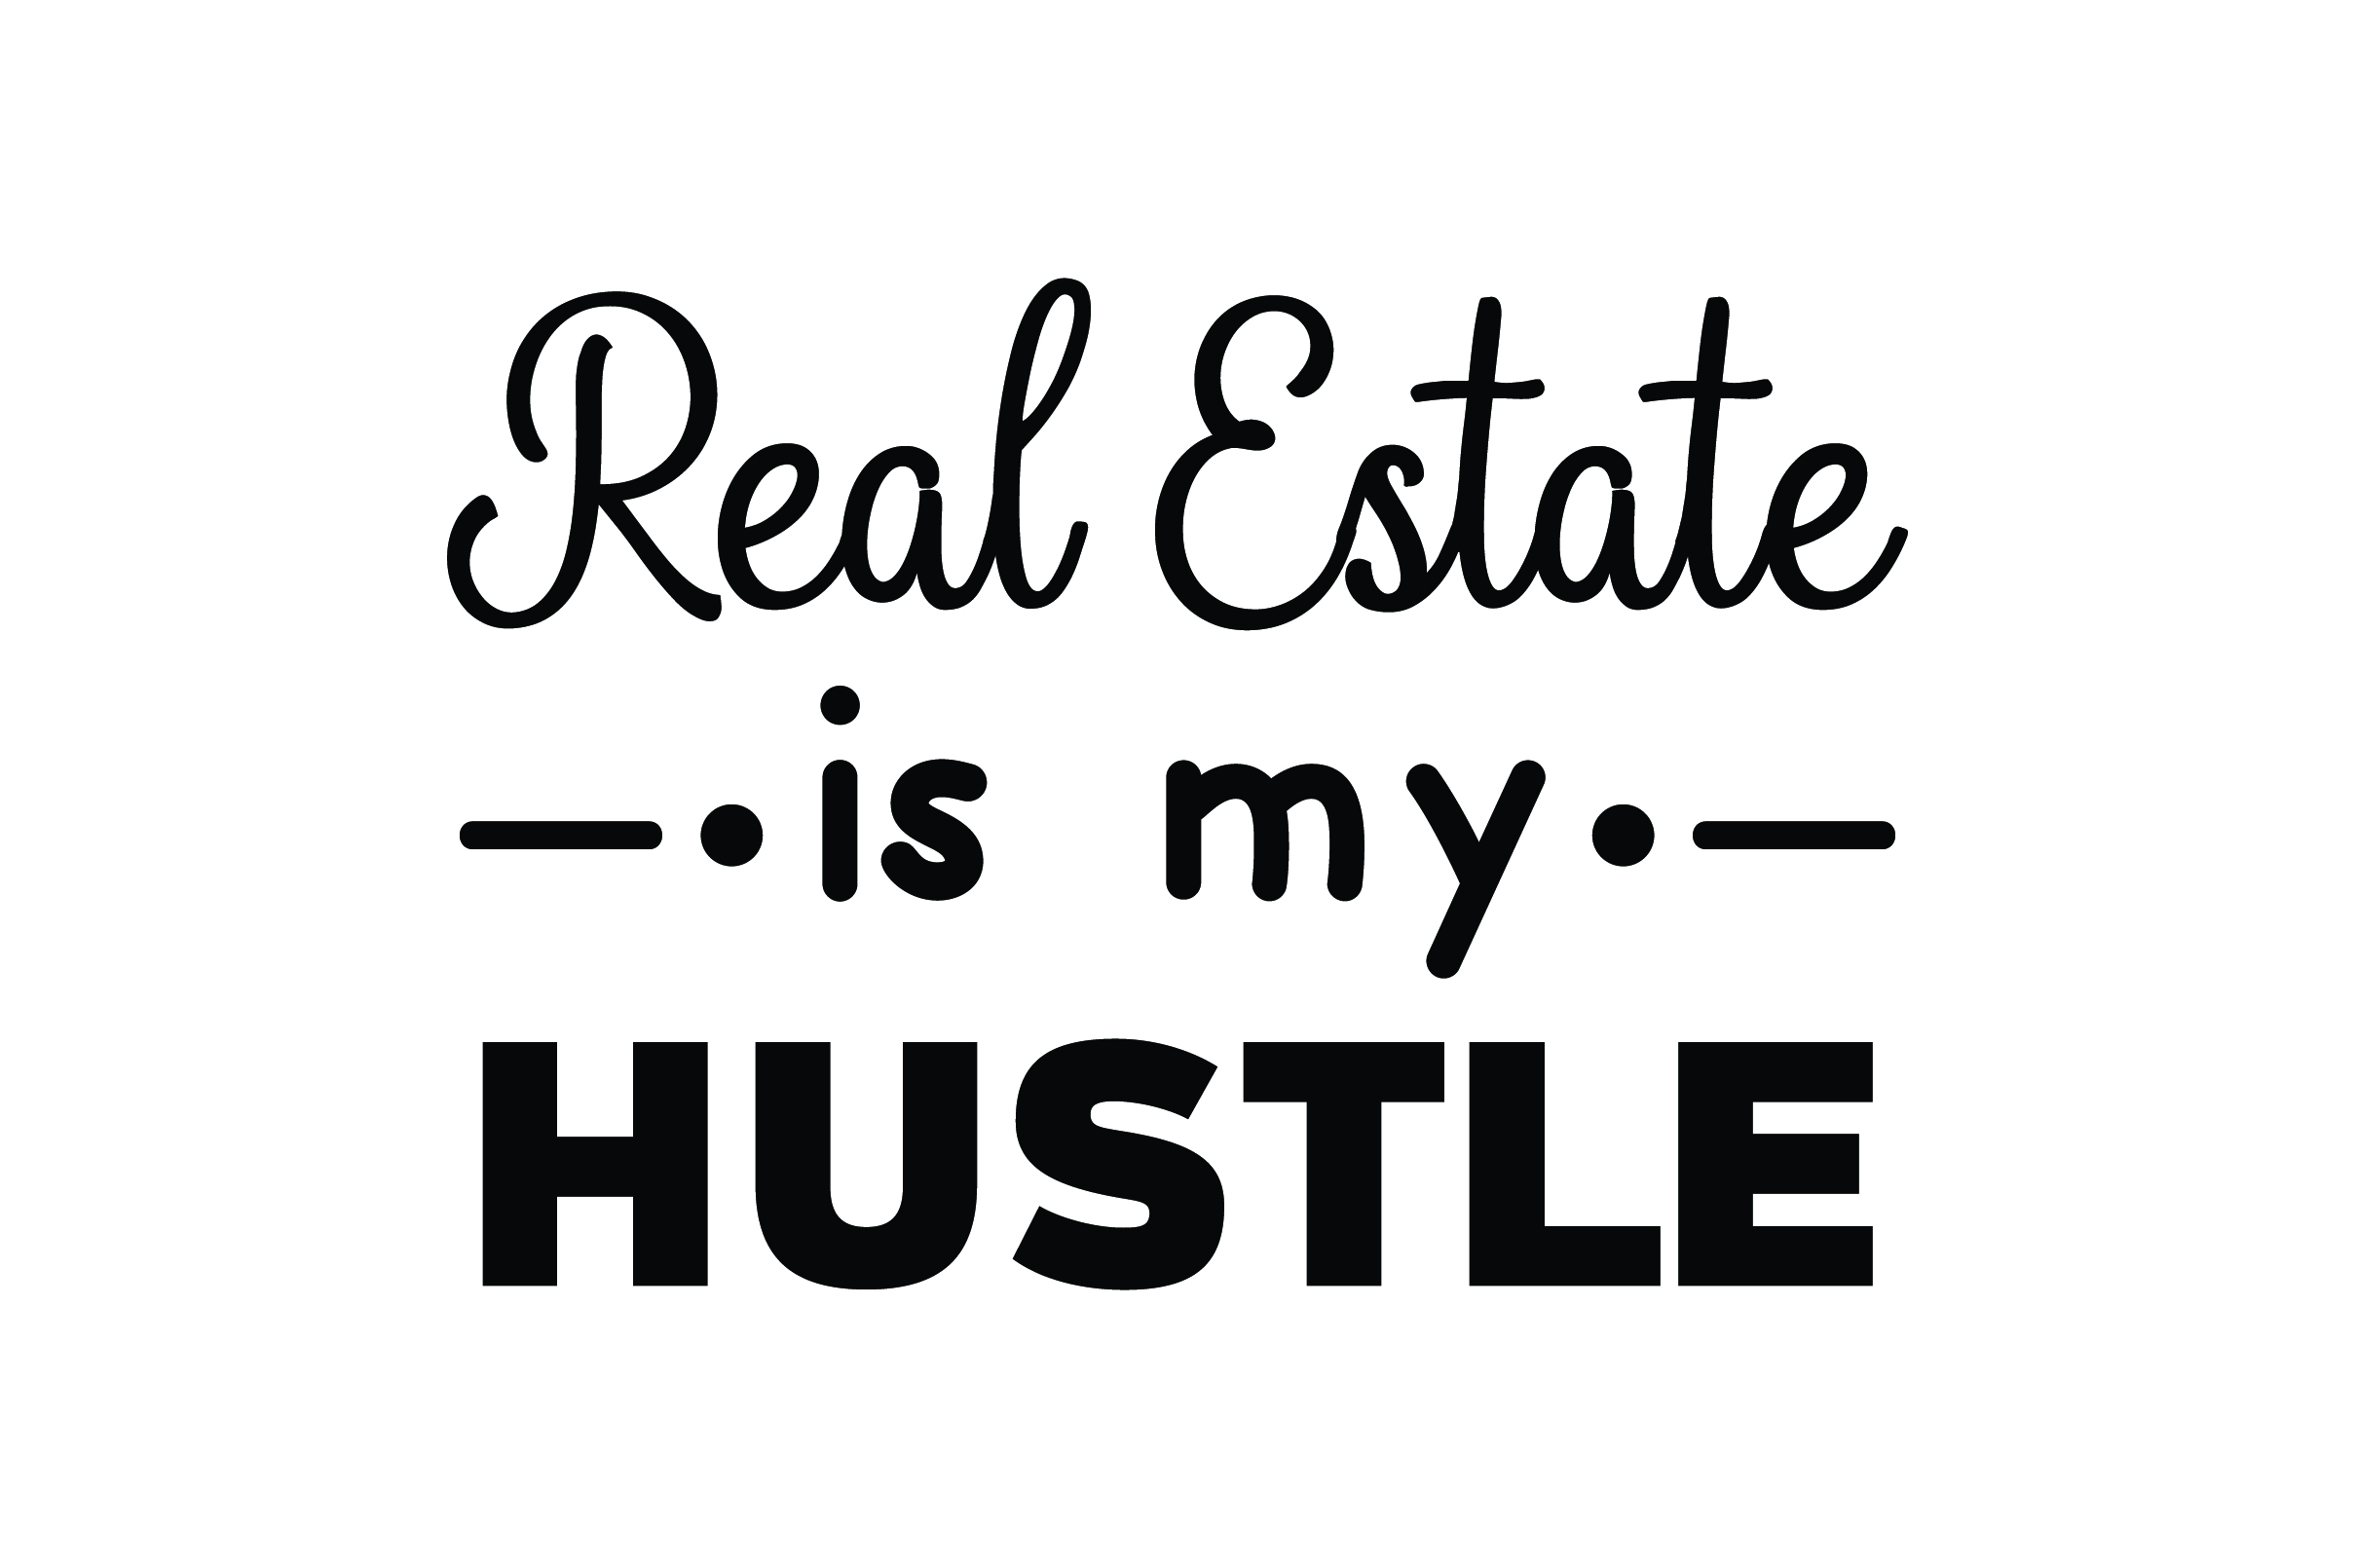 Download Free Real Estate Is My Hustle Svg Cut File By Creative Fabrica Crafts for Cricut Explore, Silhouette and other cutting machines.